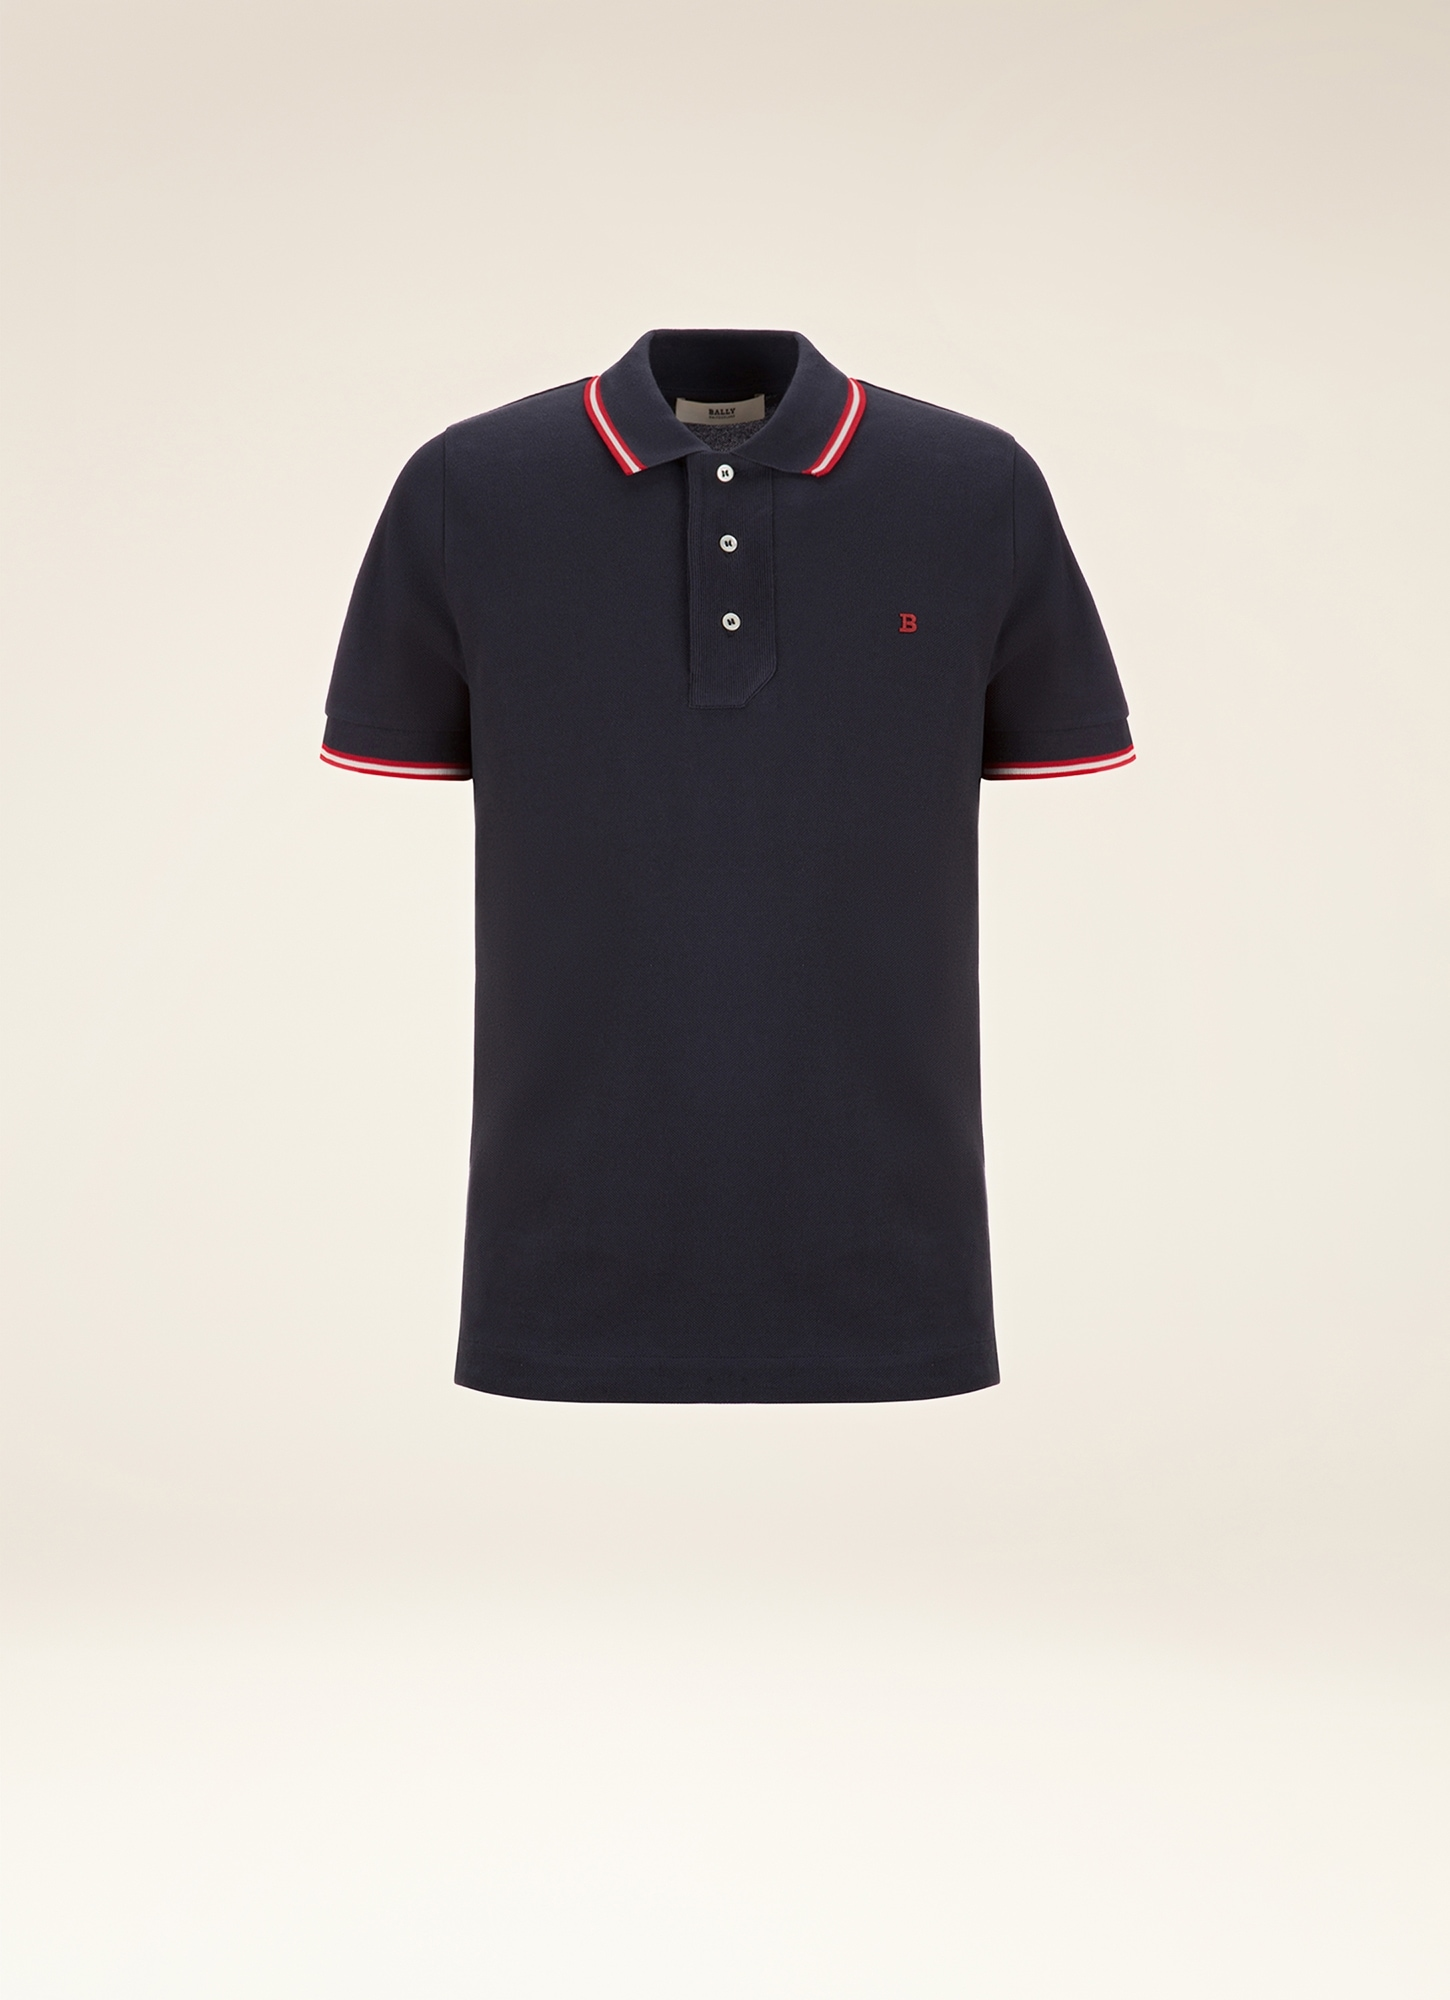 Mens Designer Shirts Tops Bally